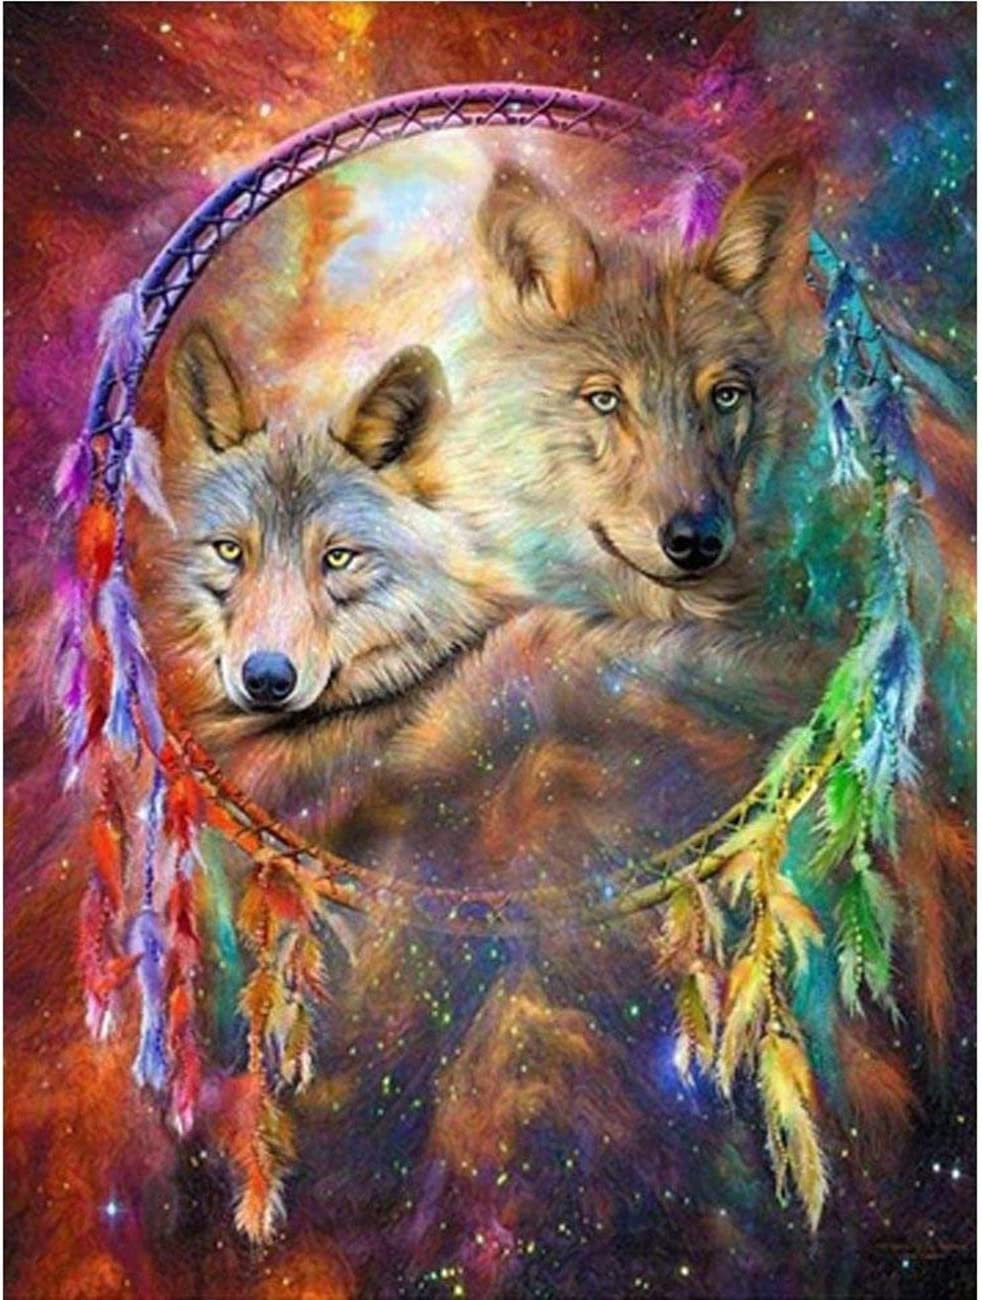 MXJSUA DIY 5D Diamond Painting by number Kits Full drill strass ricamo a punto croce PICTURES Arts Craft for home Wall Decor Dreamcatcher Wolves 30,5/x 40,6/cm